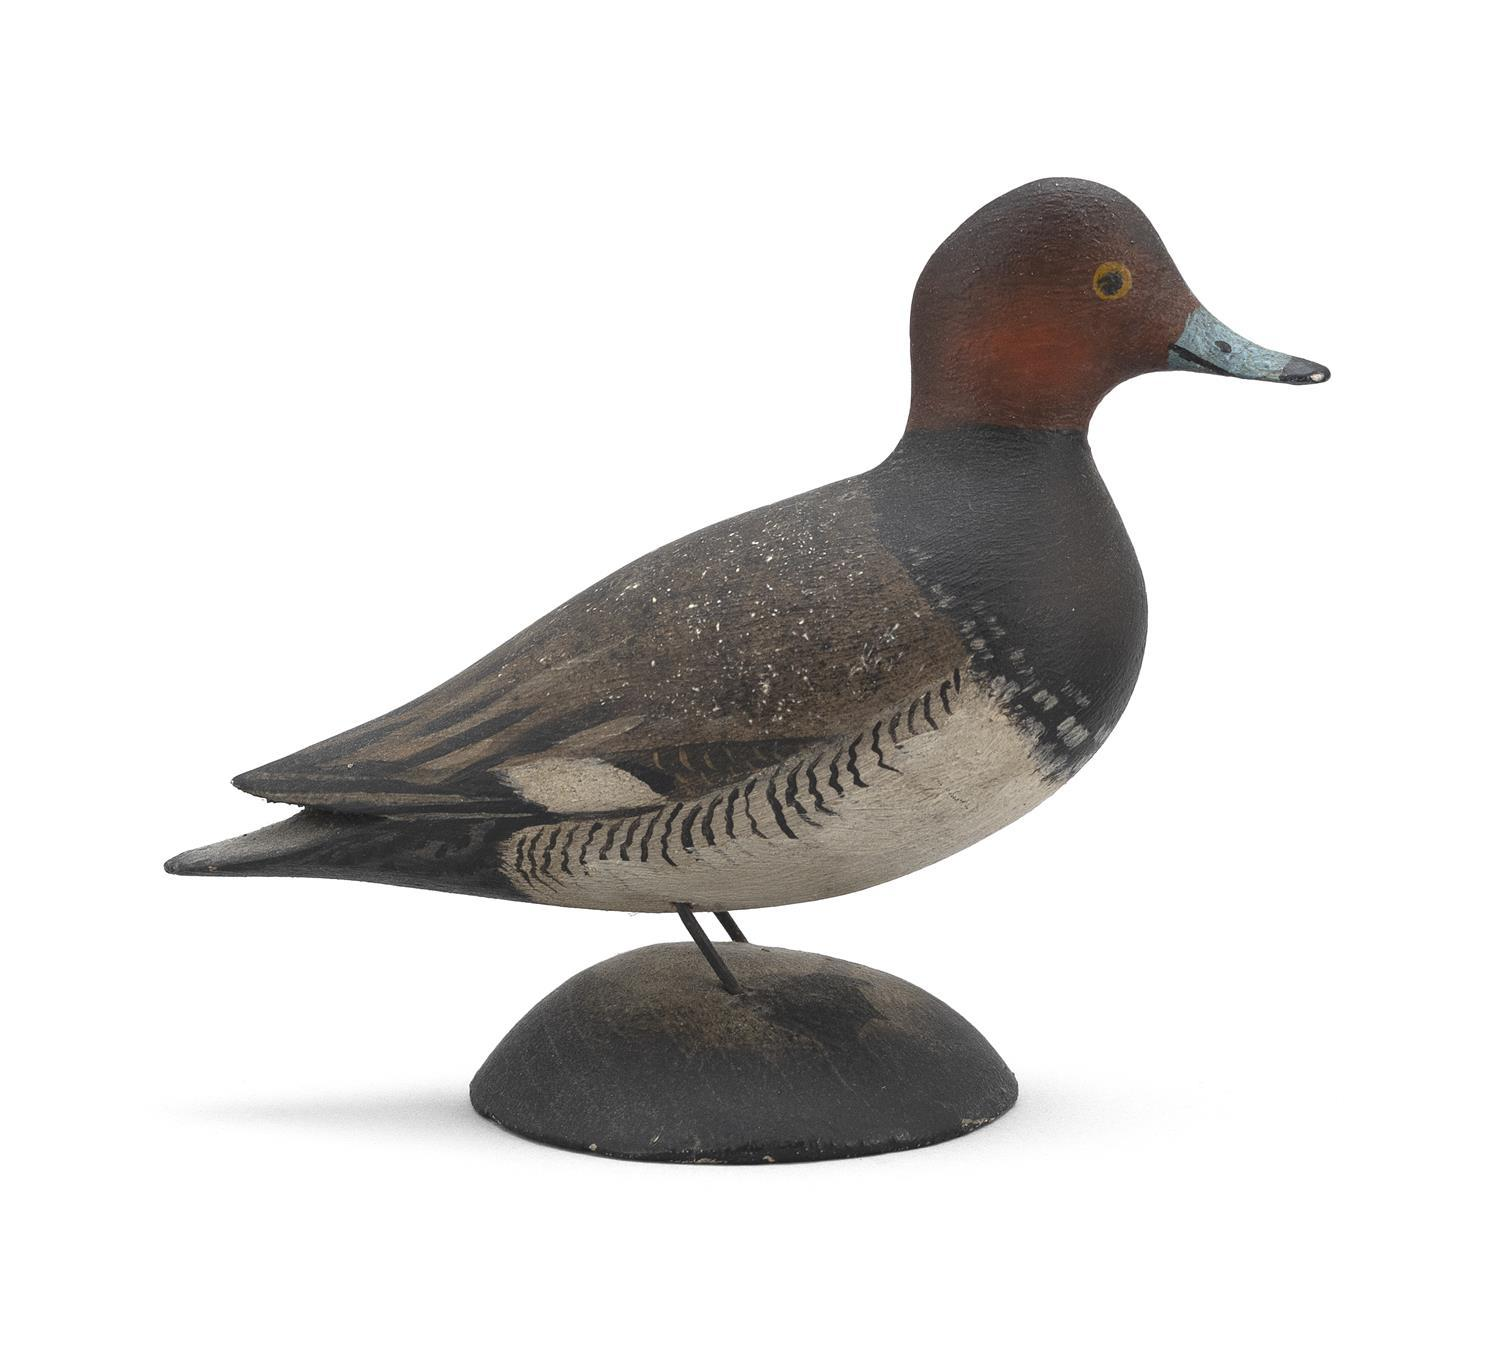 """A. ELMER CROWELL MINIATURE REDHEAD DRAKE Rubber stamp mark. Length 4"""". From the Mr. & Mrs. Ken DeLong Collection of Bird Carvings."""